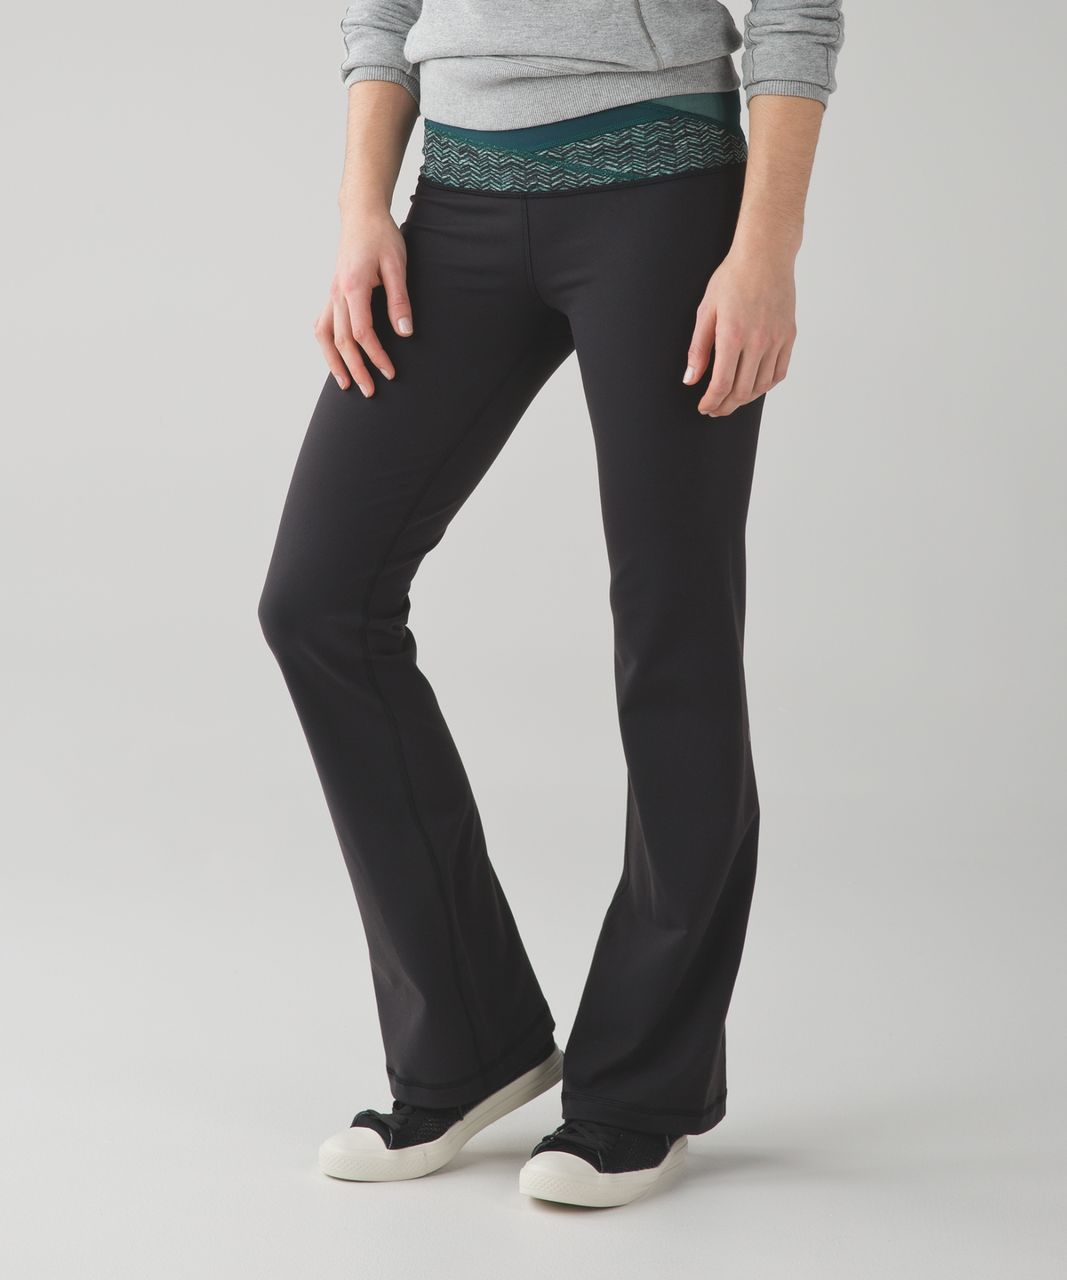 Lululemon Groove Pant III (Regular) *Full-On Luon - Black / Deep Green / Sea Mist